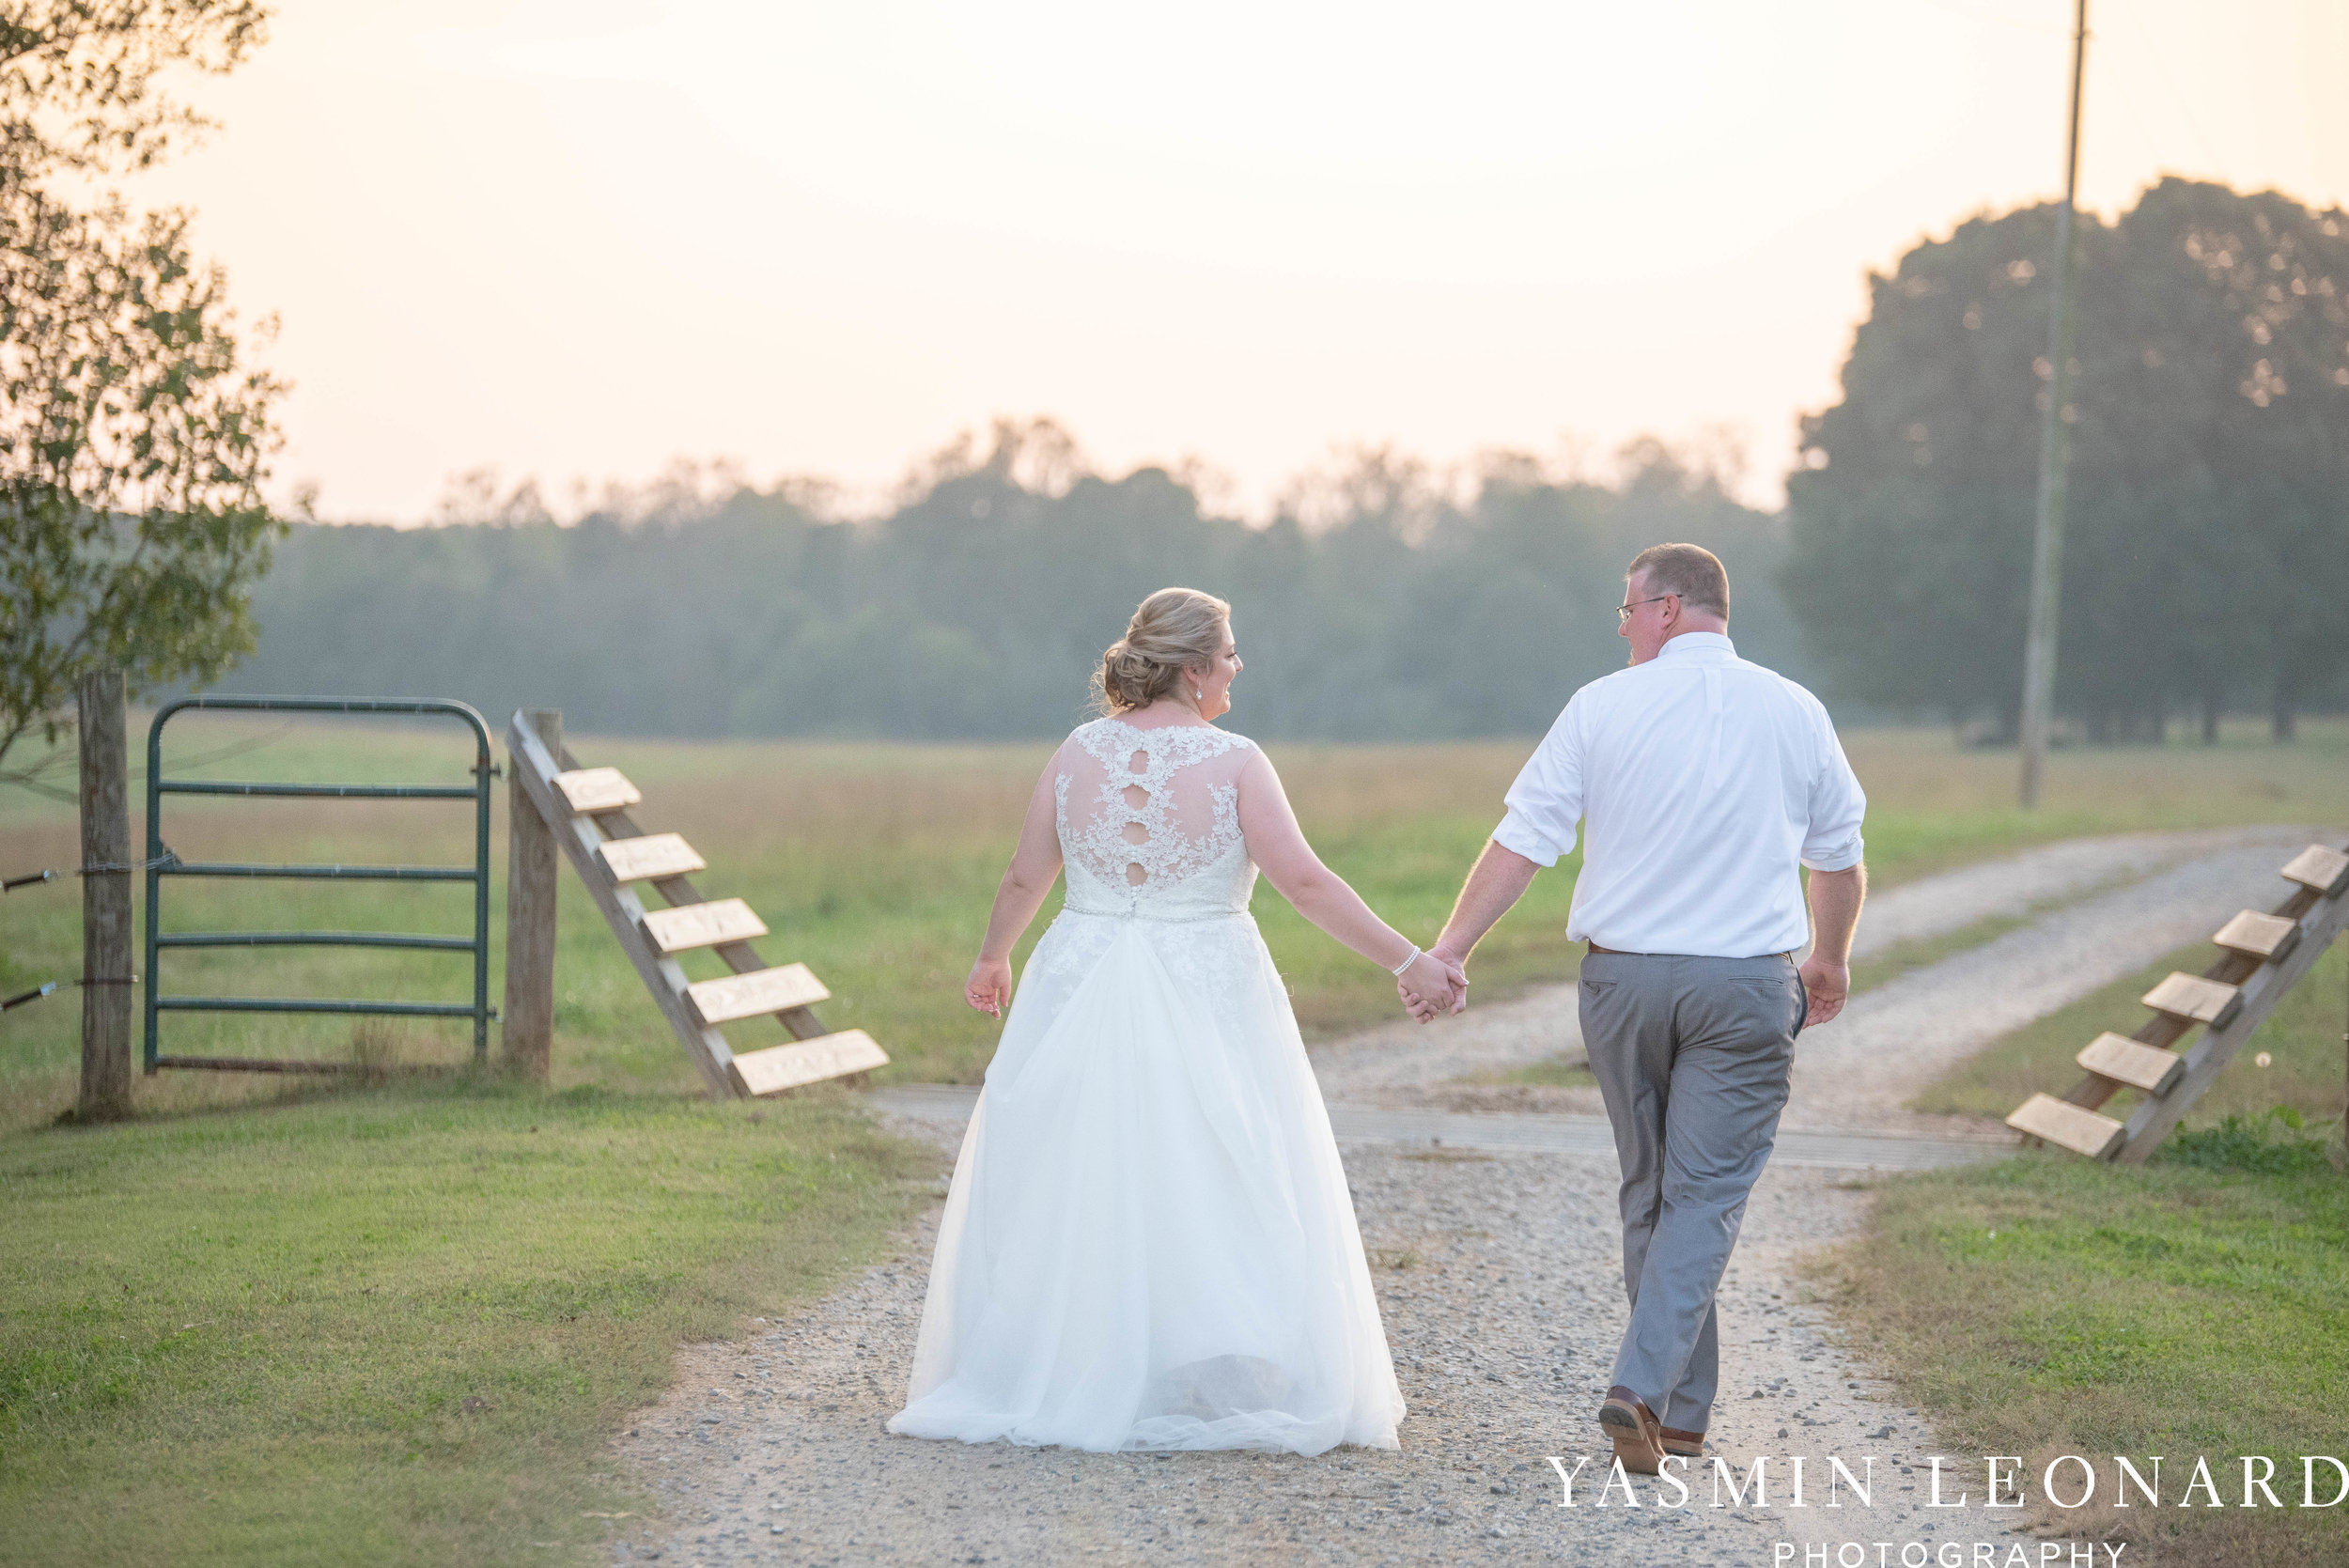 Danner Farms - NC Wedding Venues - NC Barns - Statesville NC - NC Wedding Photographer - High Point Wedding Photographer - Yasmin Leonard Photography-53.jpg